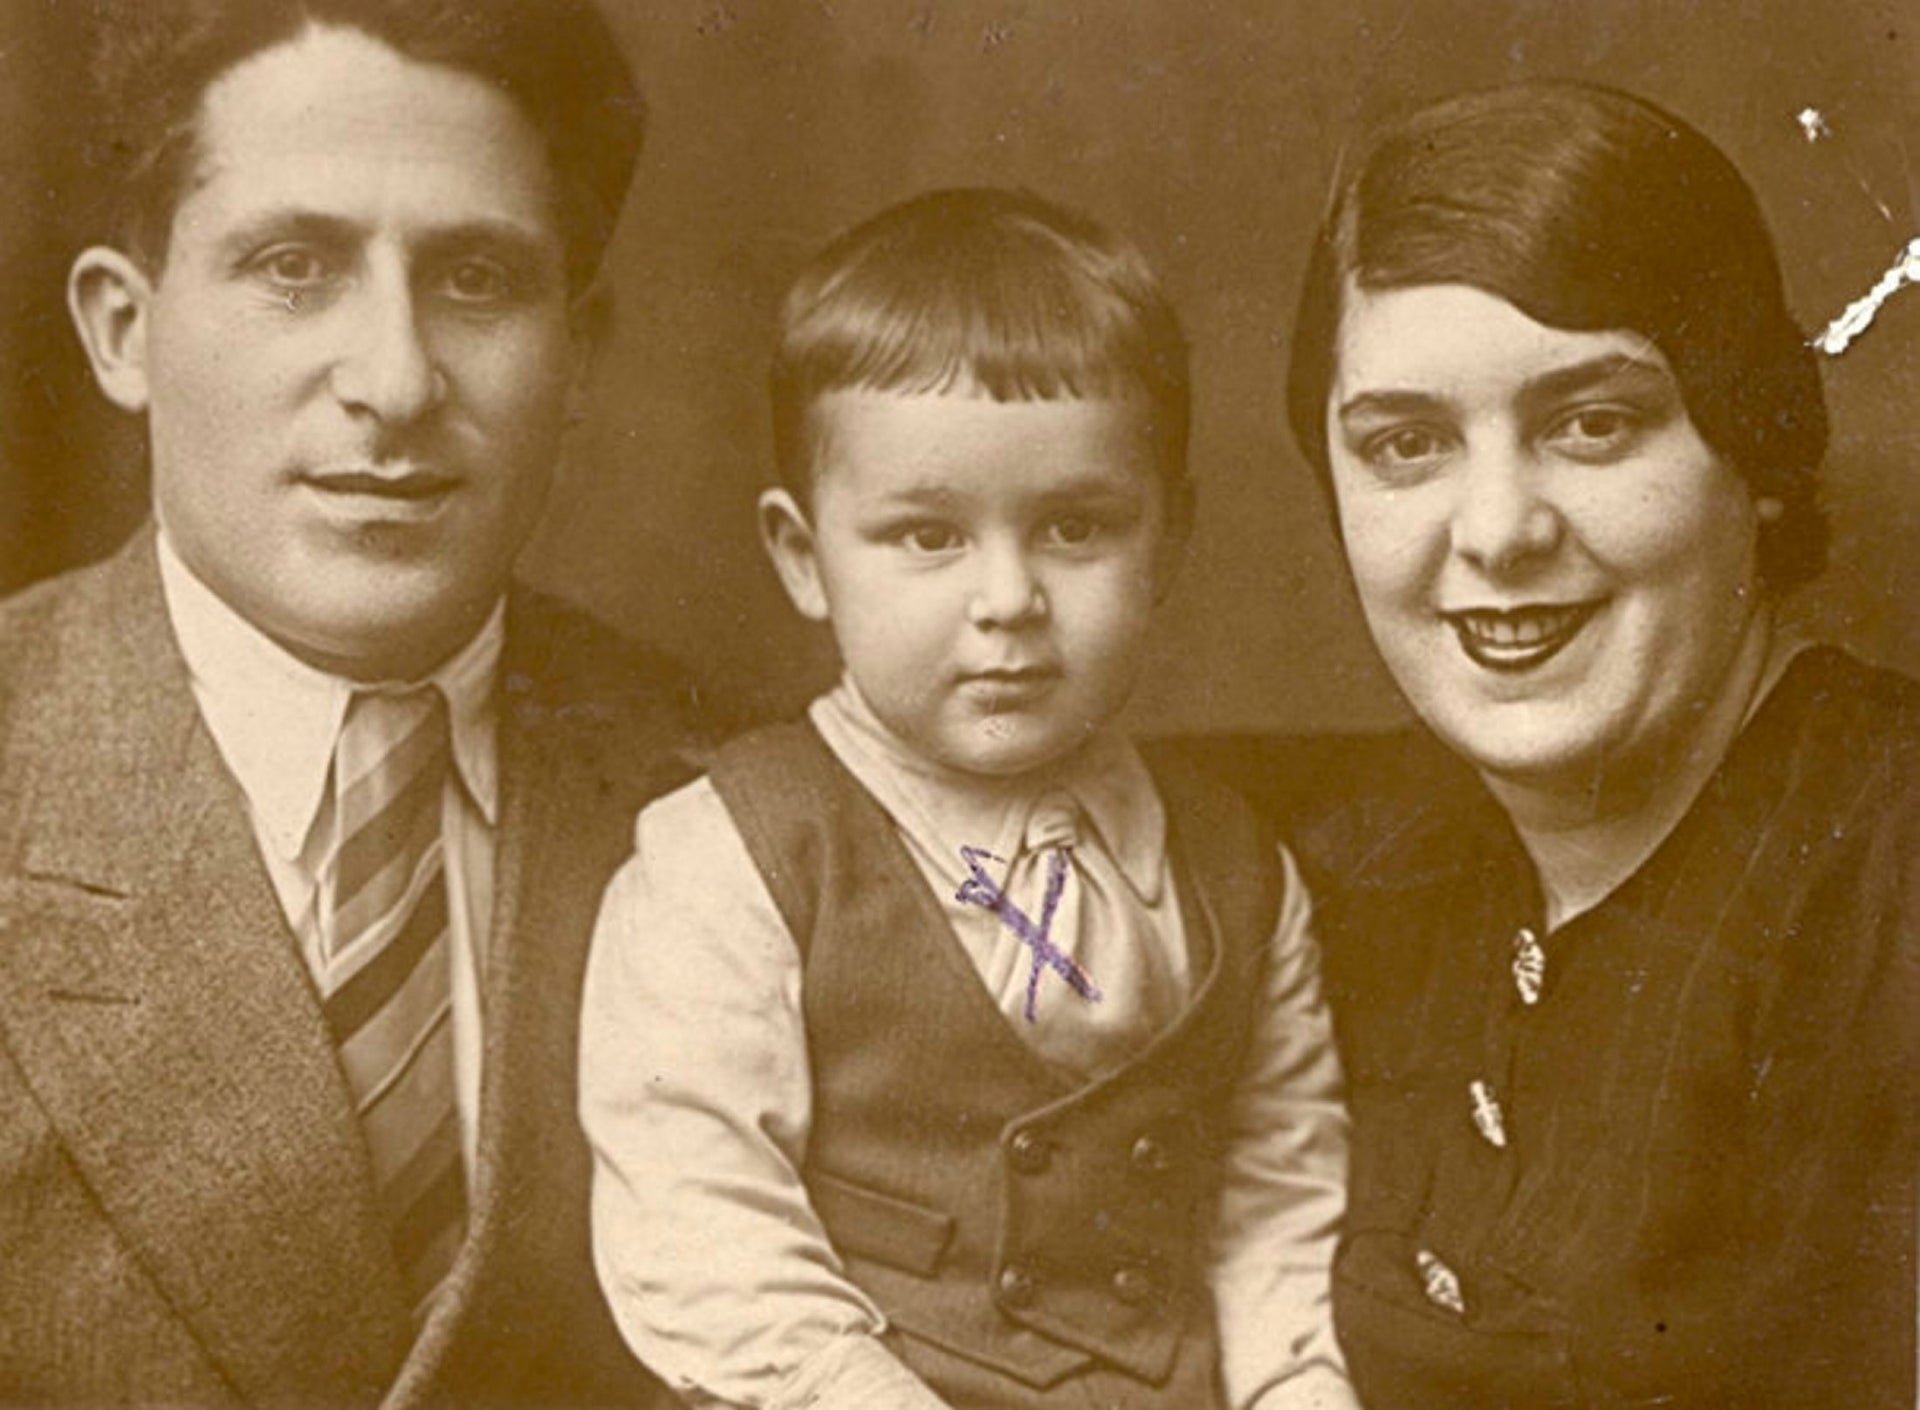 The Meerovich family from Rostov-on-Don. At the start of World War II, Jews made up 5.4 percent of the city's population.